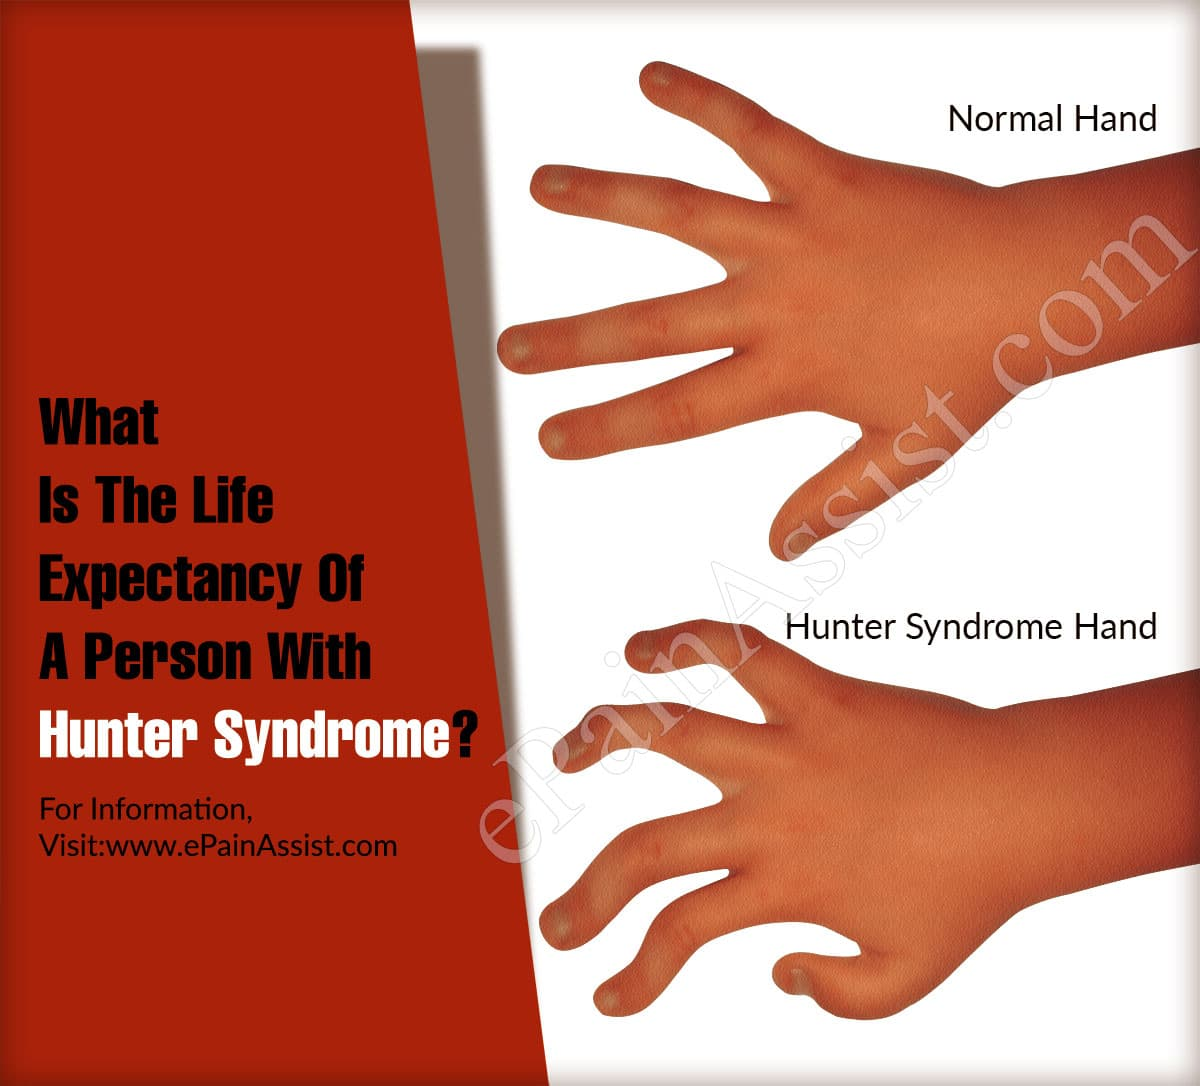 What Is The Life Expectancy Of A Person With Hunter Syndrome?